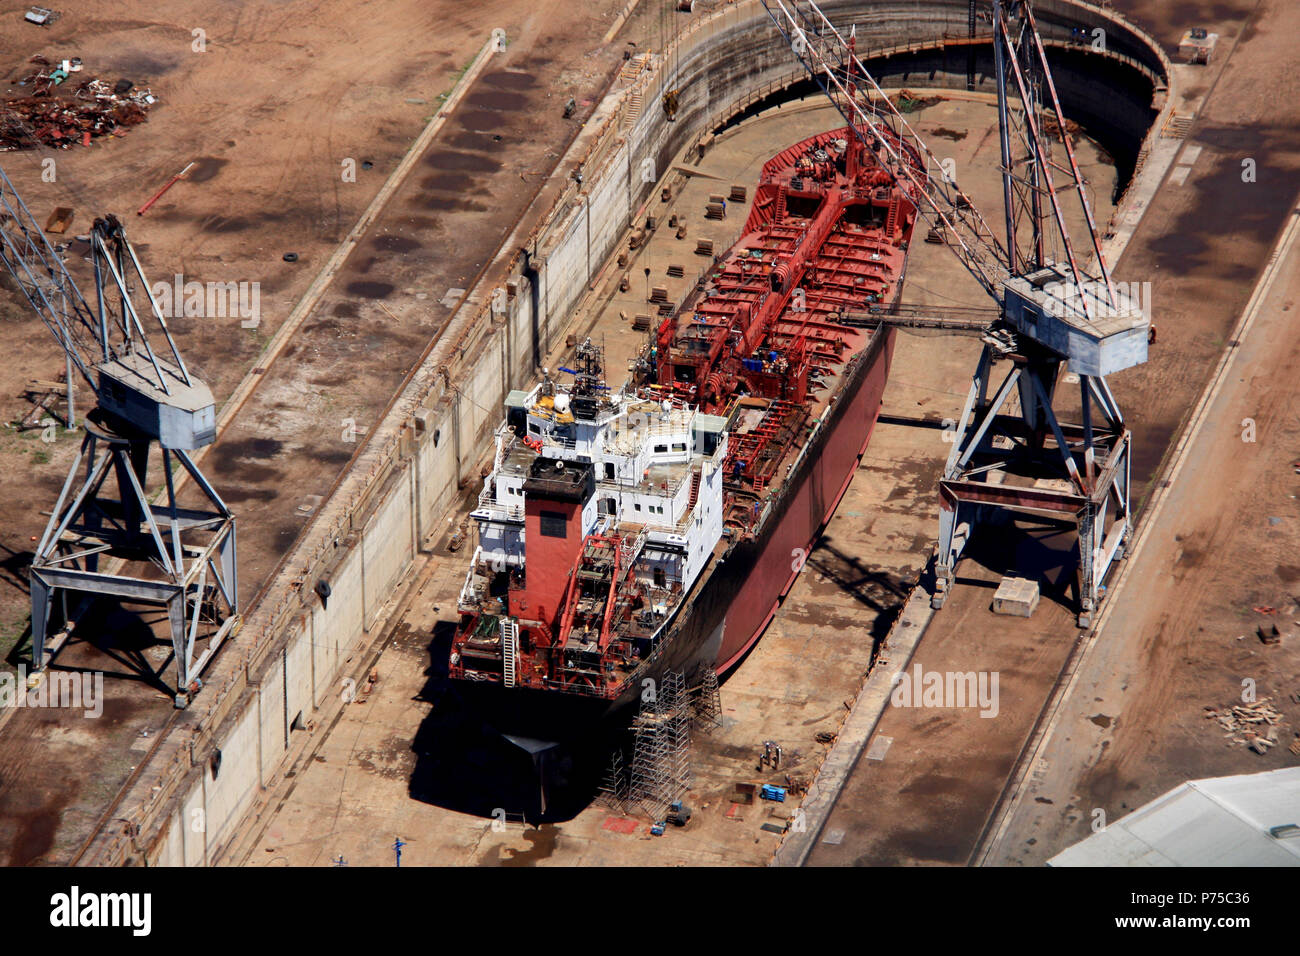 Aerial view of a ship in a dry dock in Ghana Stock Photo